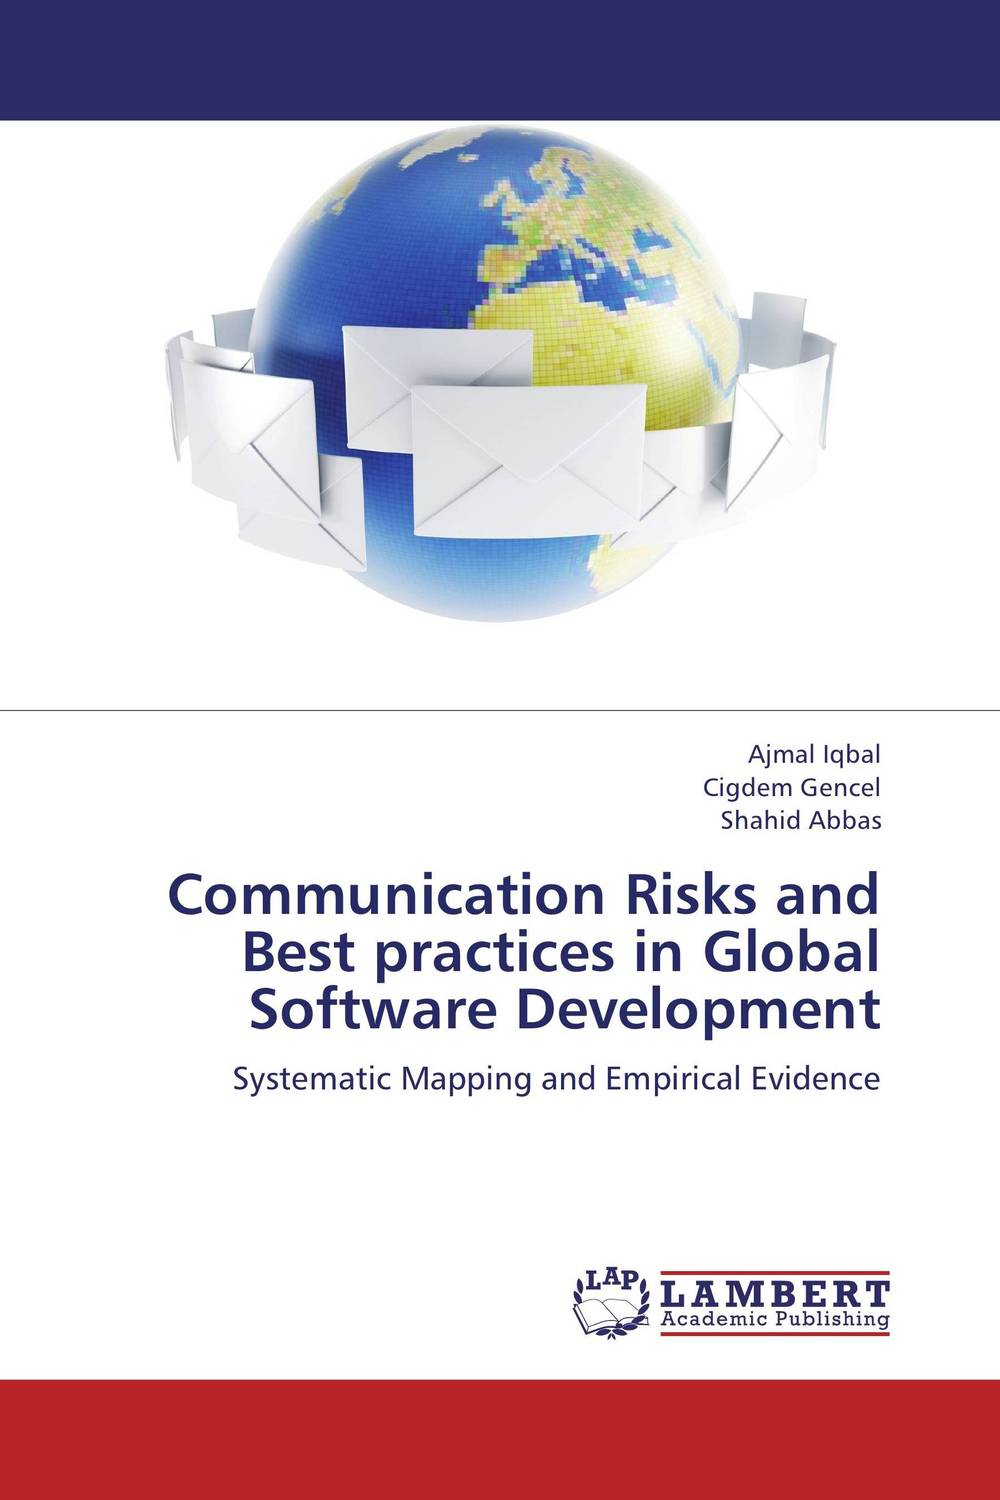 Communication Risks and Best practices in Global Software Development choral all state policies and practices